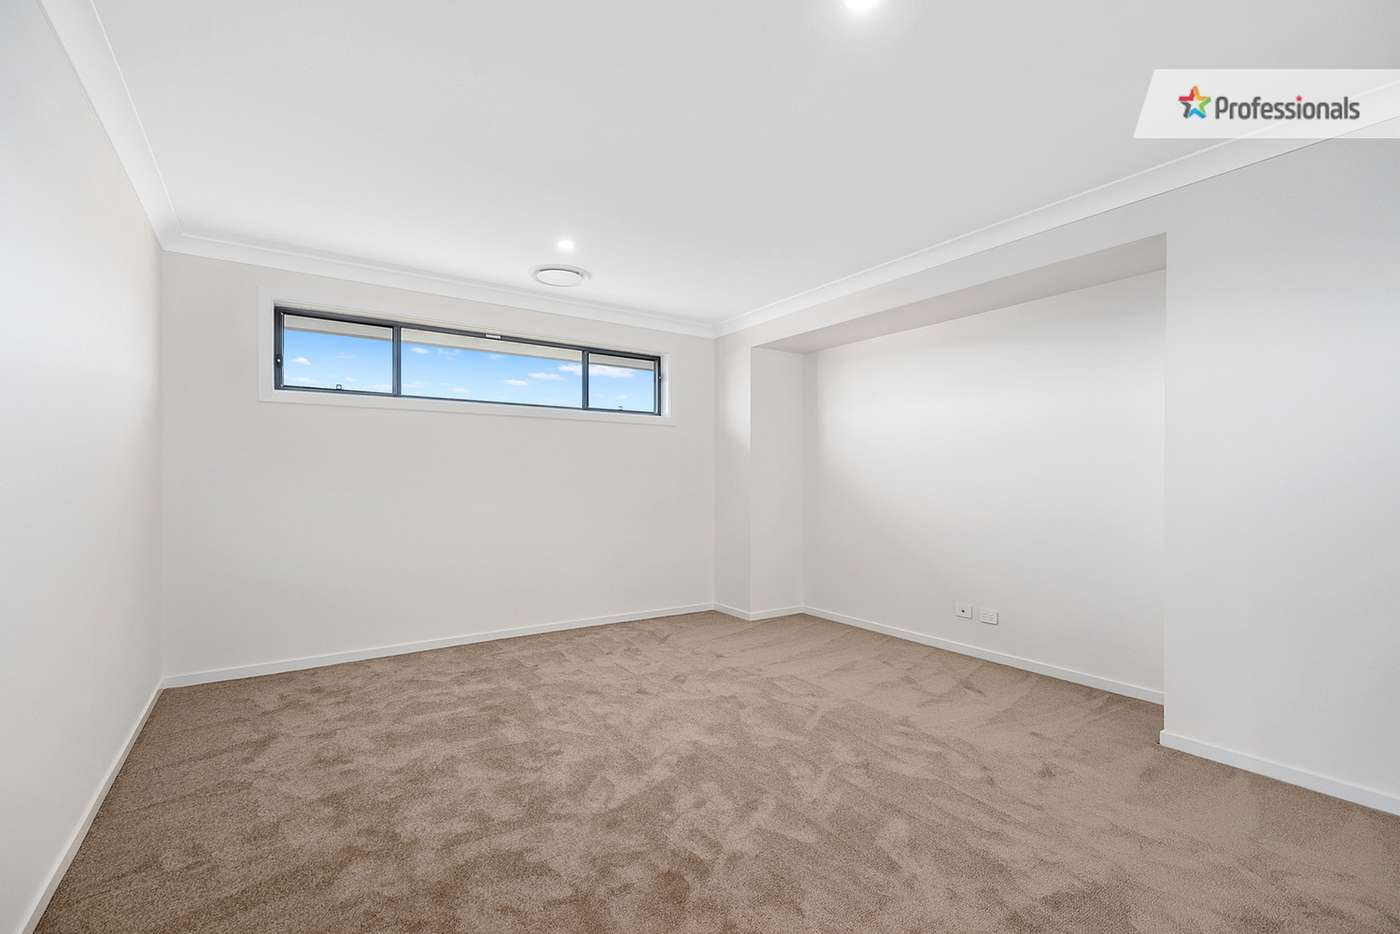 Sixth view of Homely house listing, 9 Dressage Street, Box Hill NSW 2765